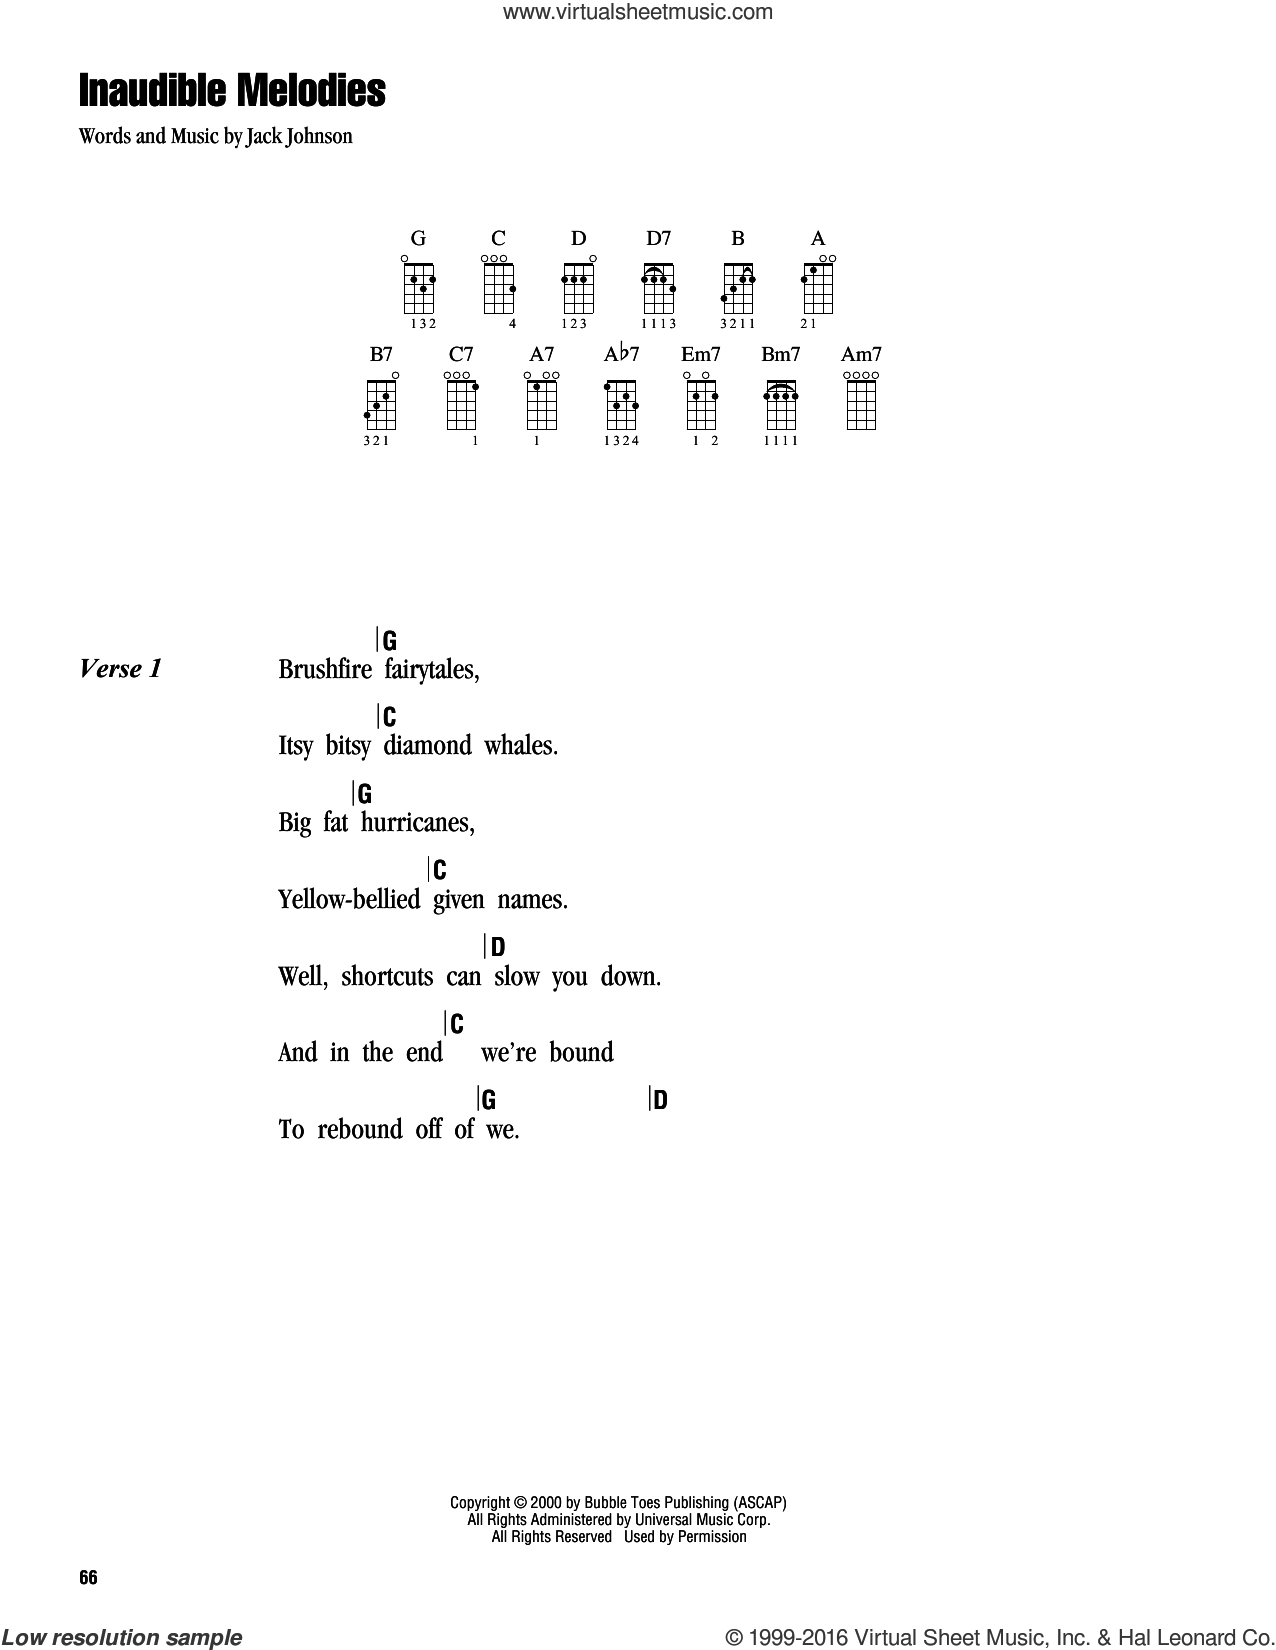 Inaudible Melodies sheet music for ukulele (chords) by Jack Johnson. Score Image Preview.